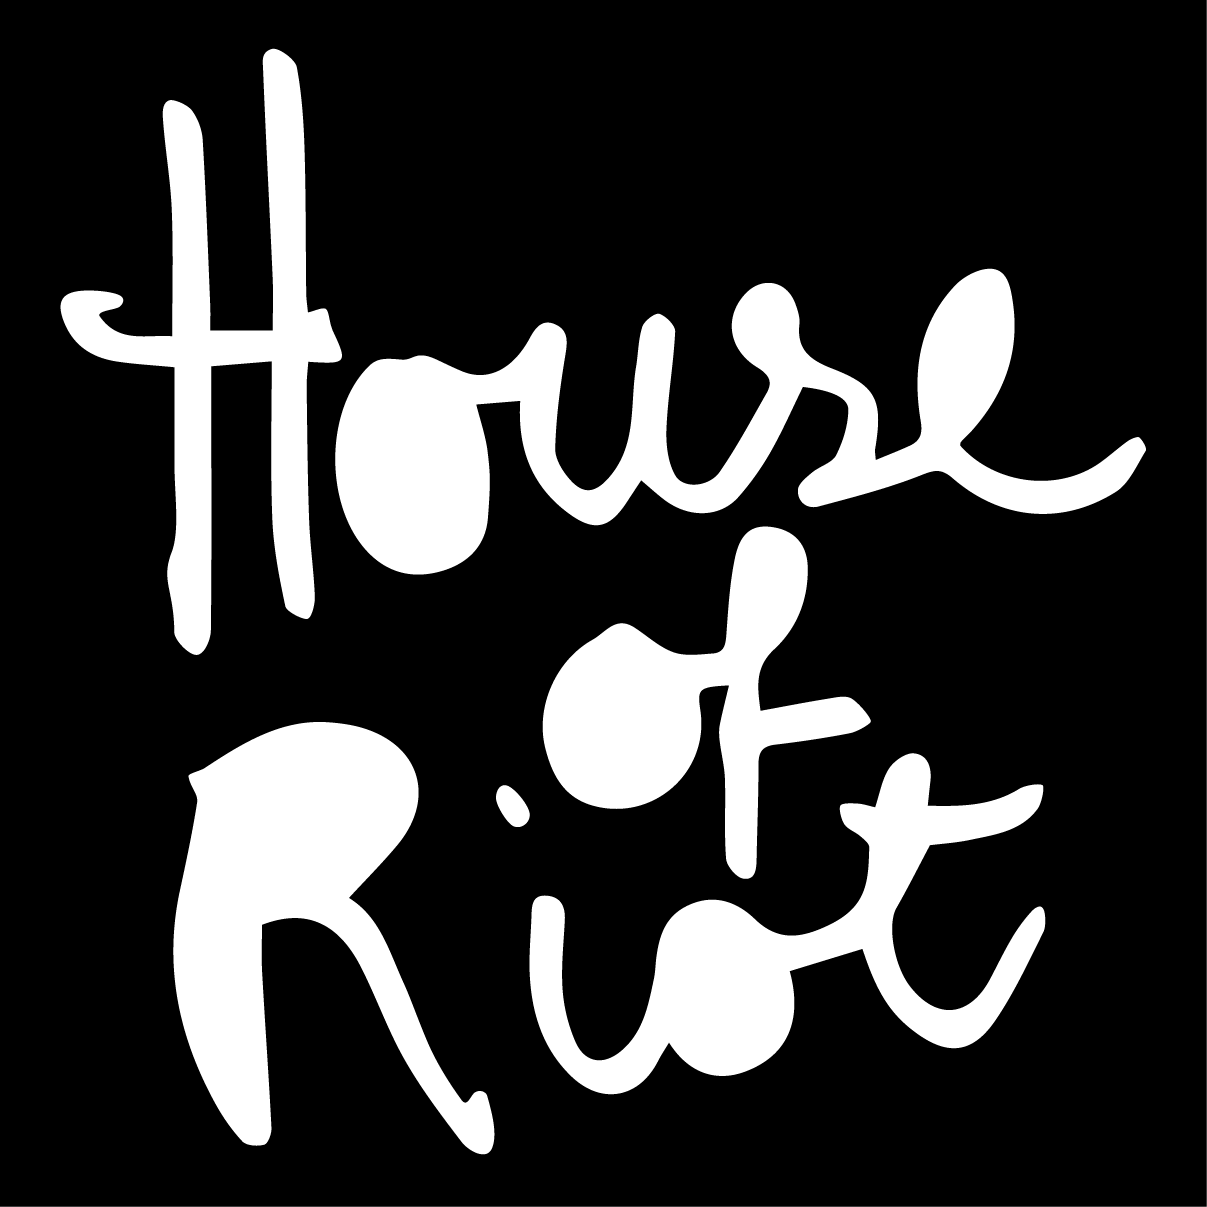 HOUSE OF RIOT